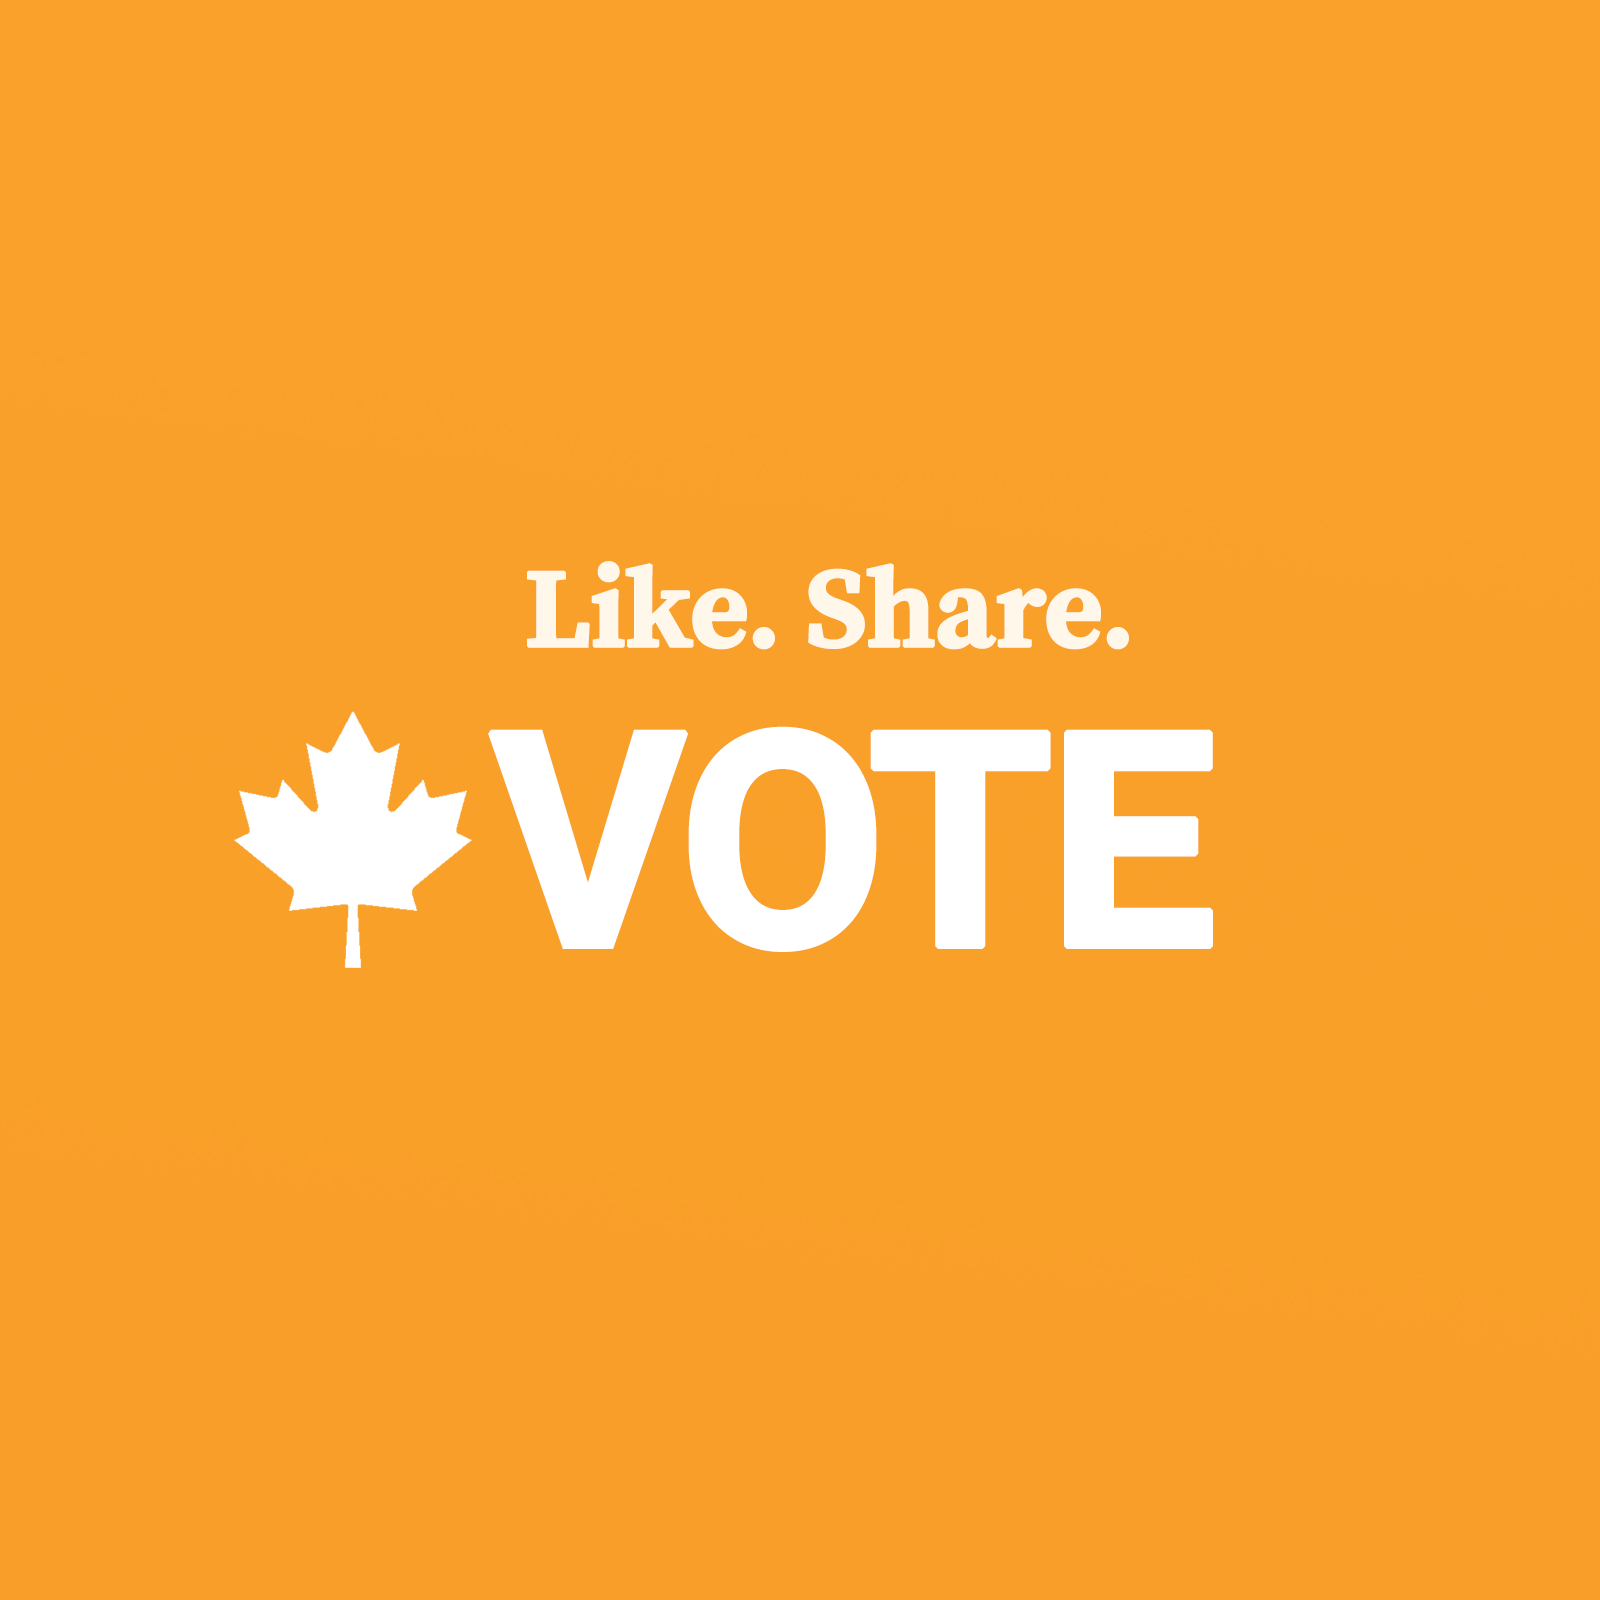 Like Share Vote election image